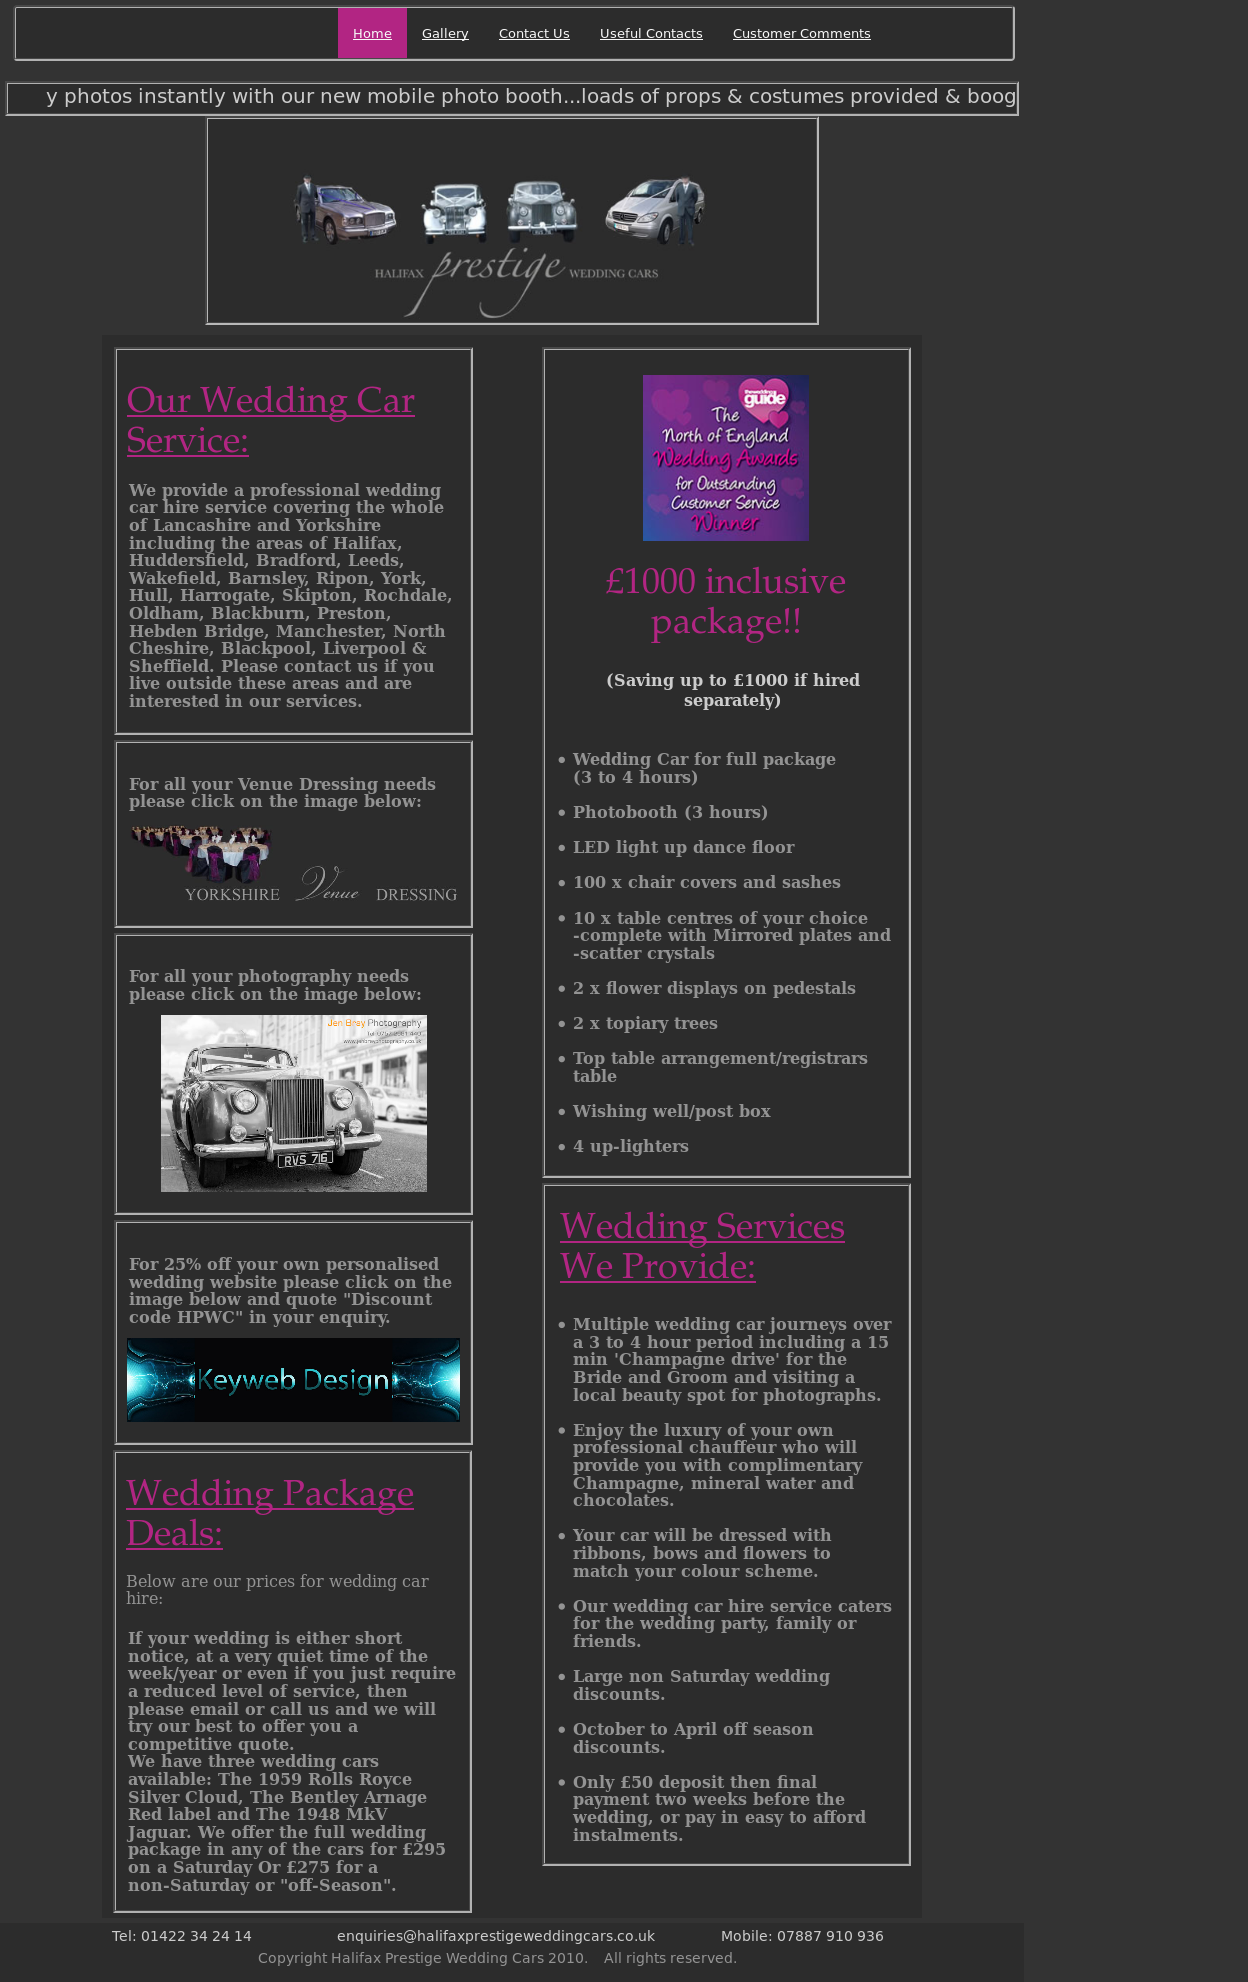 Halifax Prestige Wedding Cars Compeors Revenue And Employees Owler Company Profile